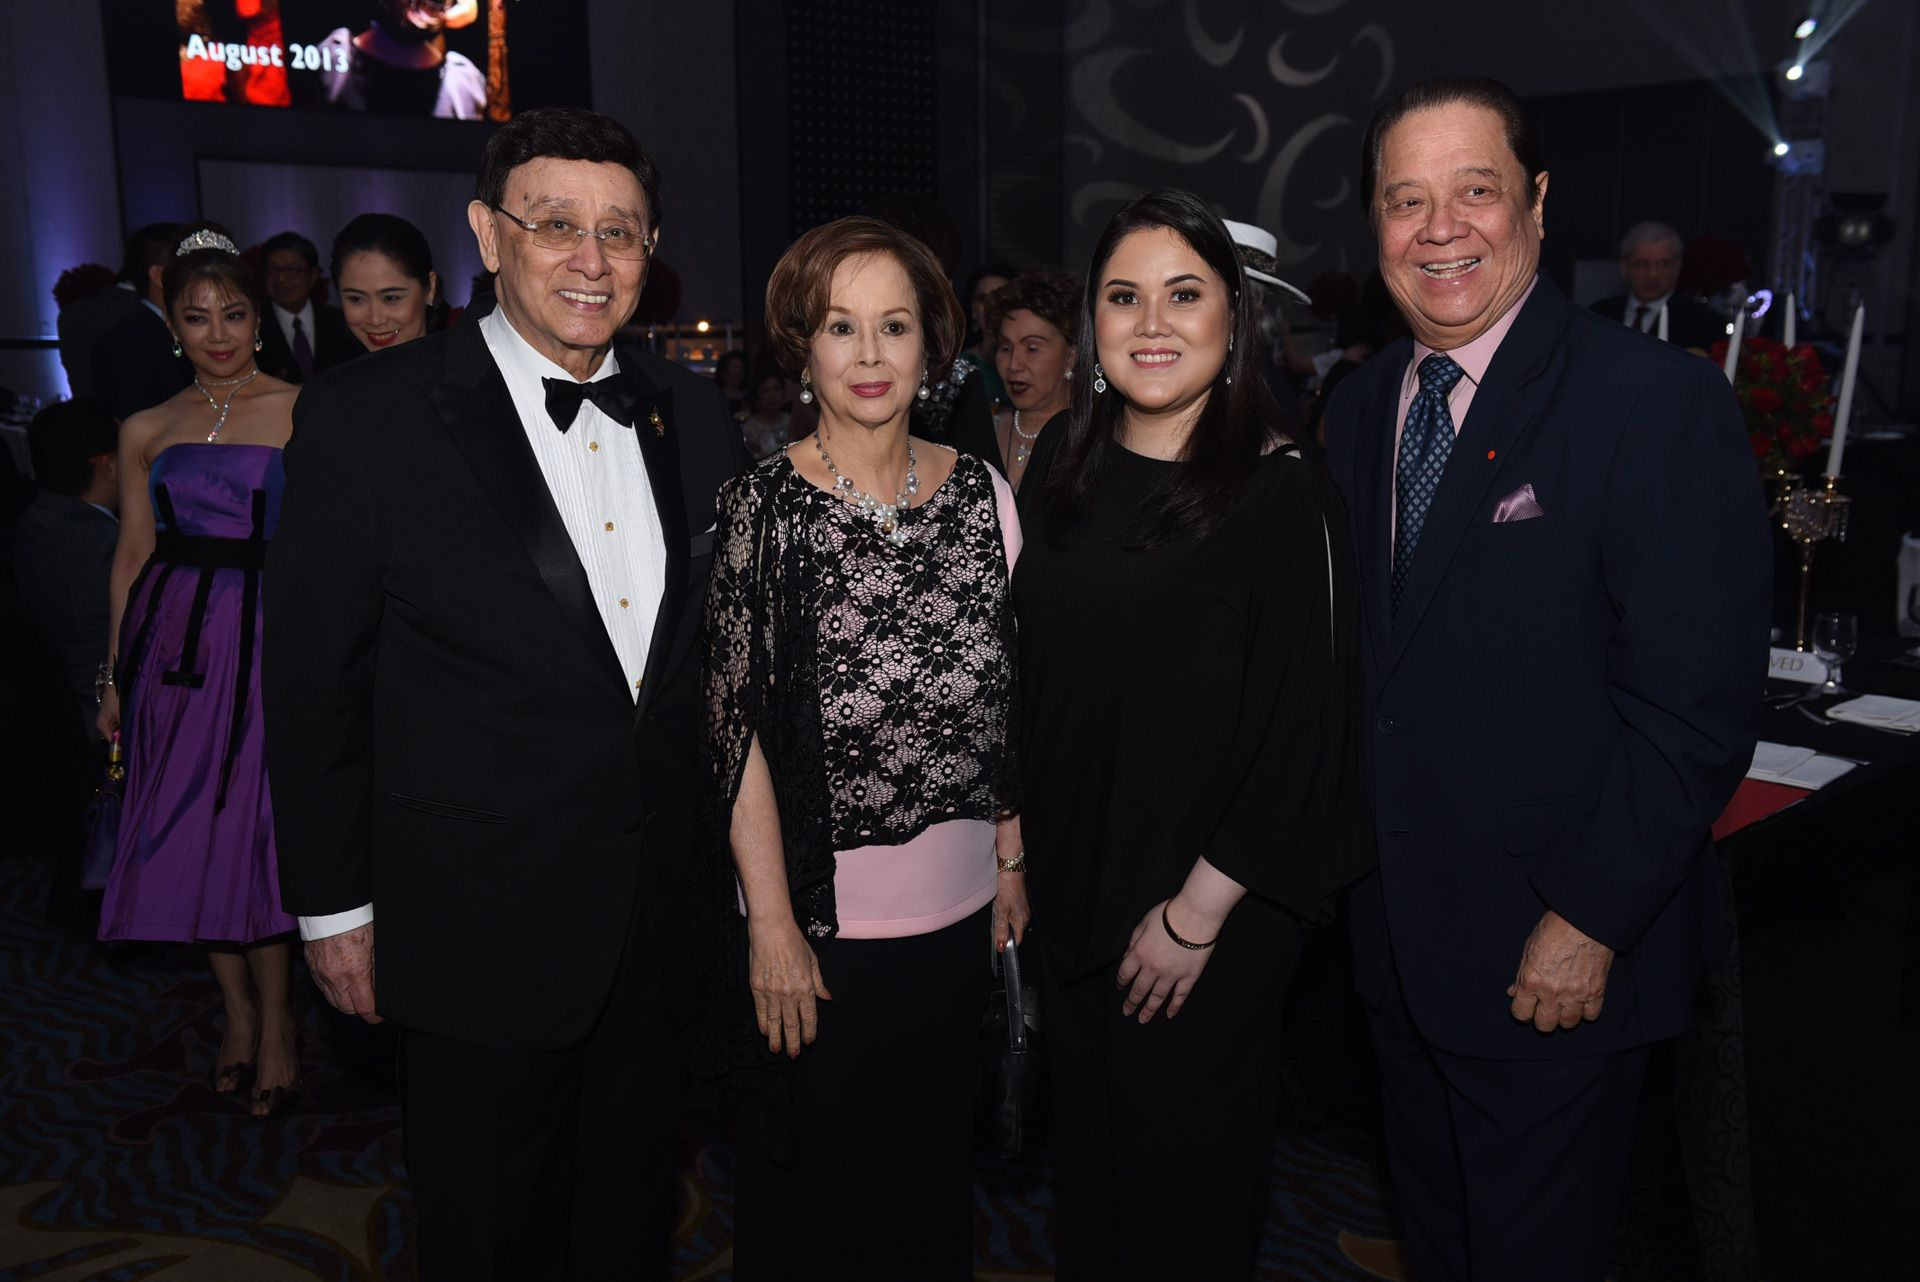 Johnny Litton, Conchitina Bernardo, Tara Litton, and Ambassador Lani Bernardo